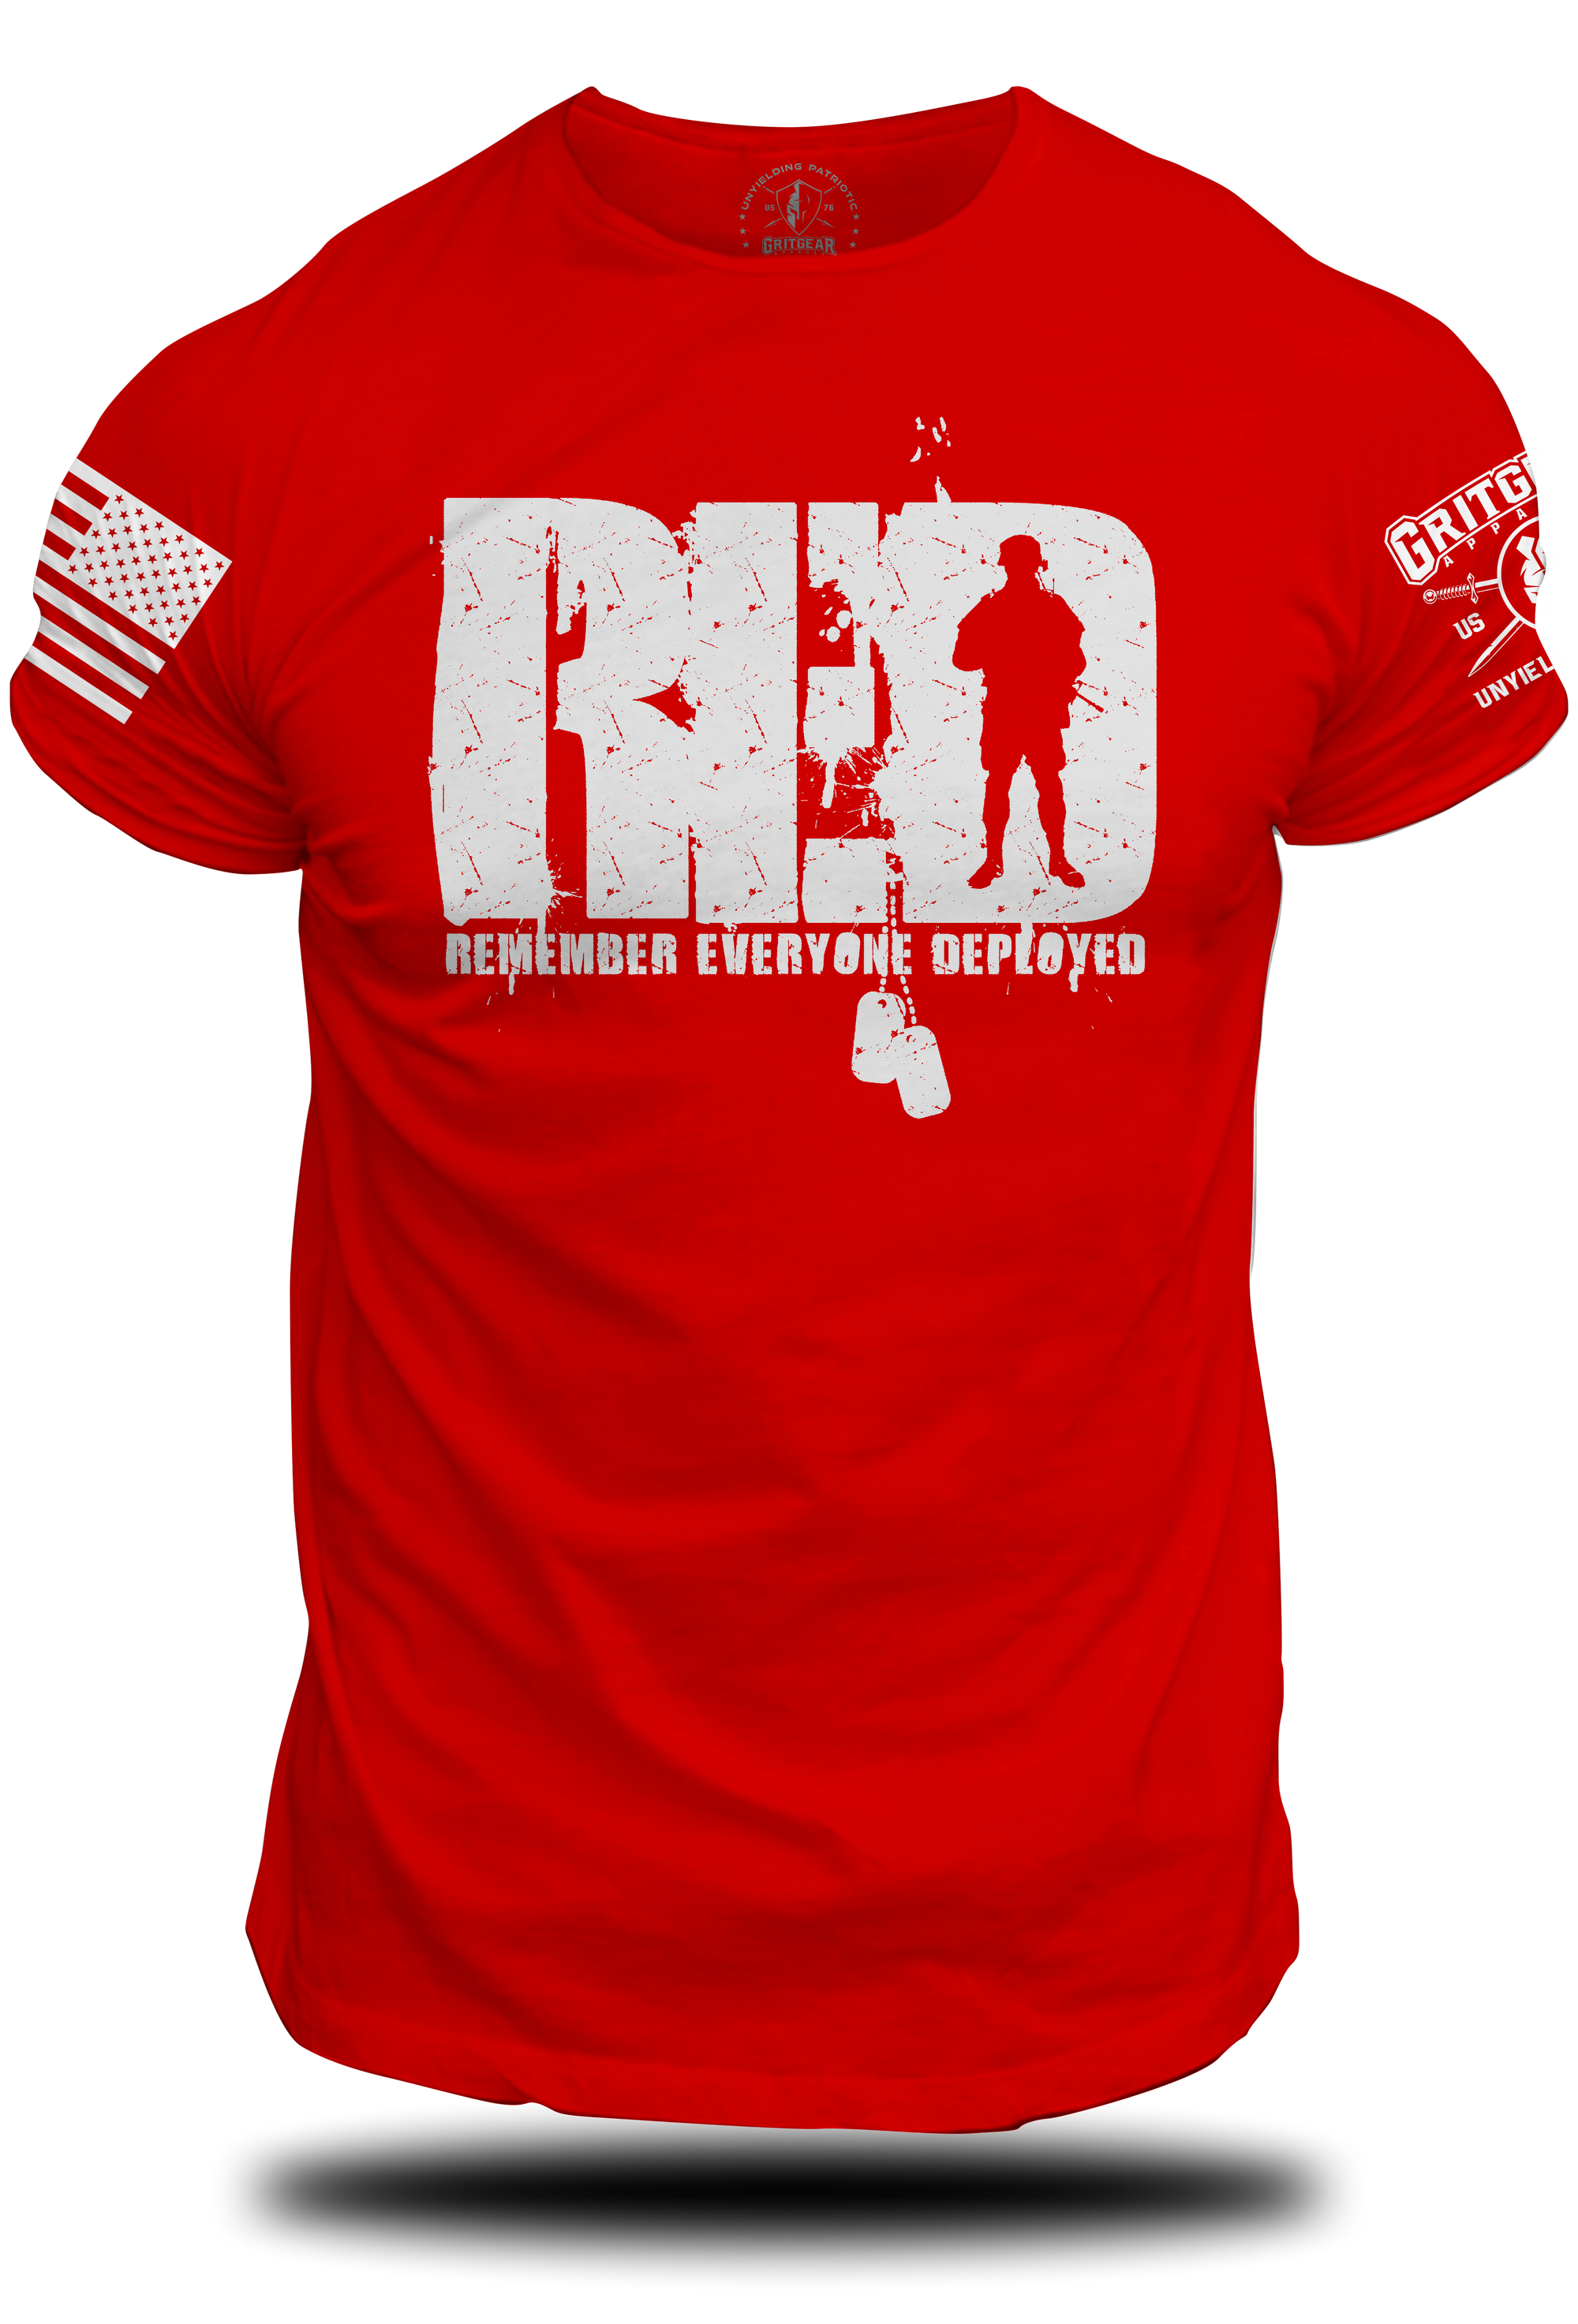 RED Standing Soldier Tee | Grit Gear Apparel